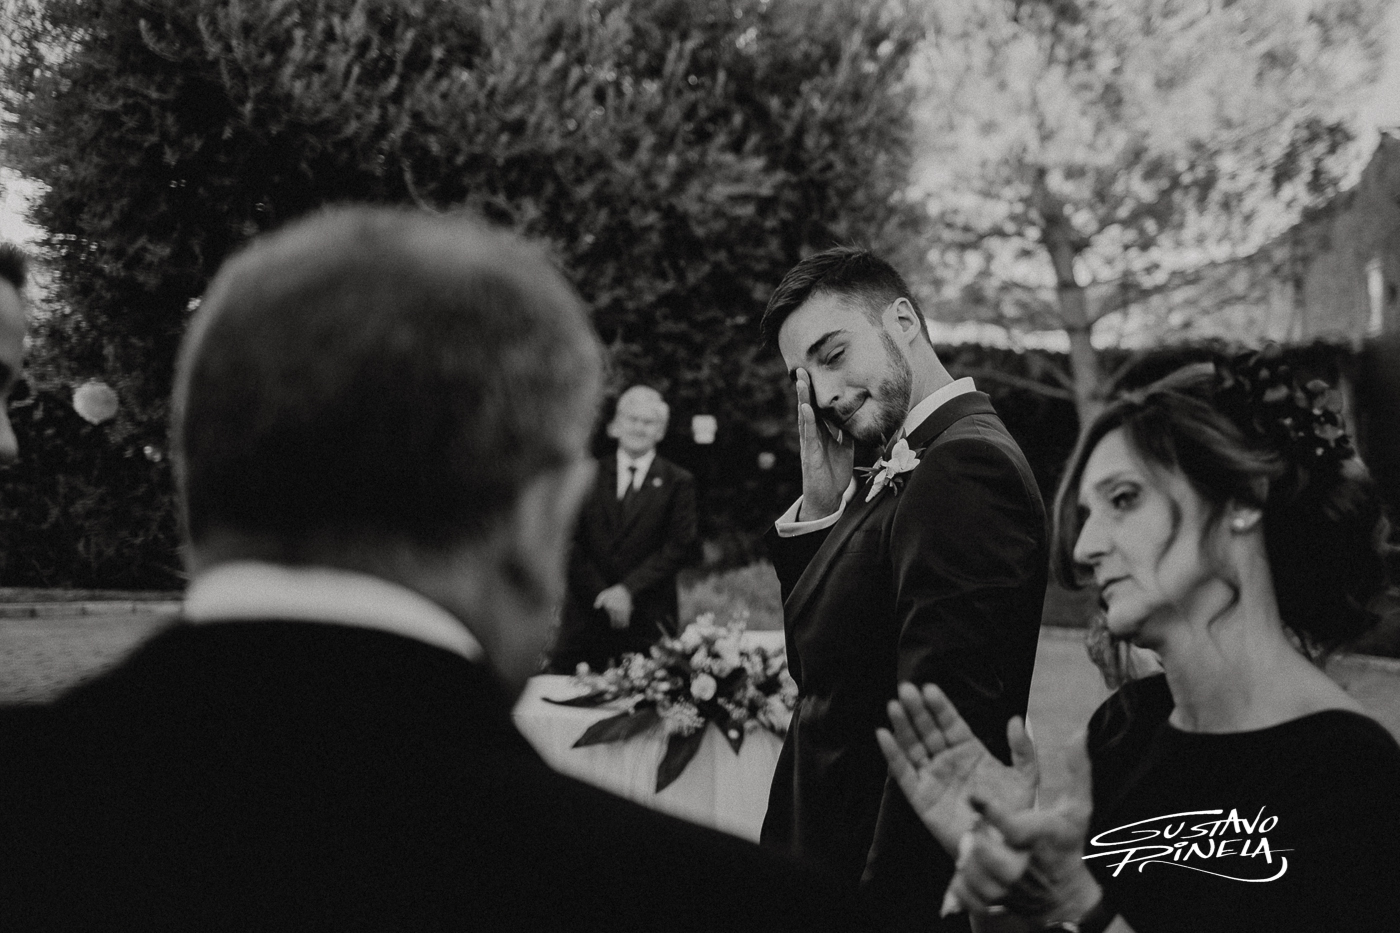 Bodas - Gustavo Pinela. Natural and spontaneous wedding photography